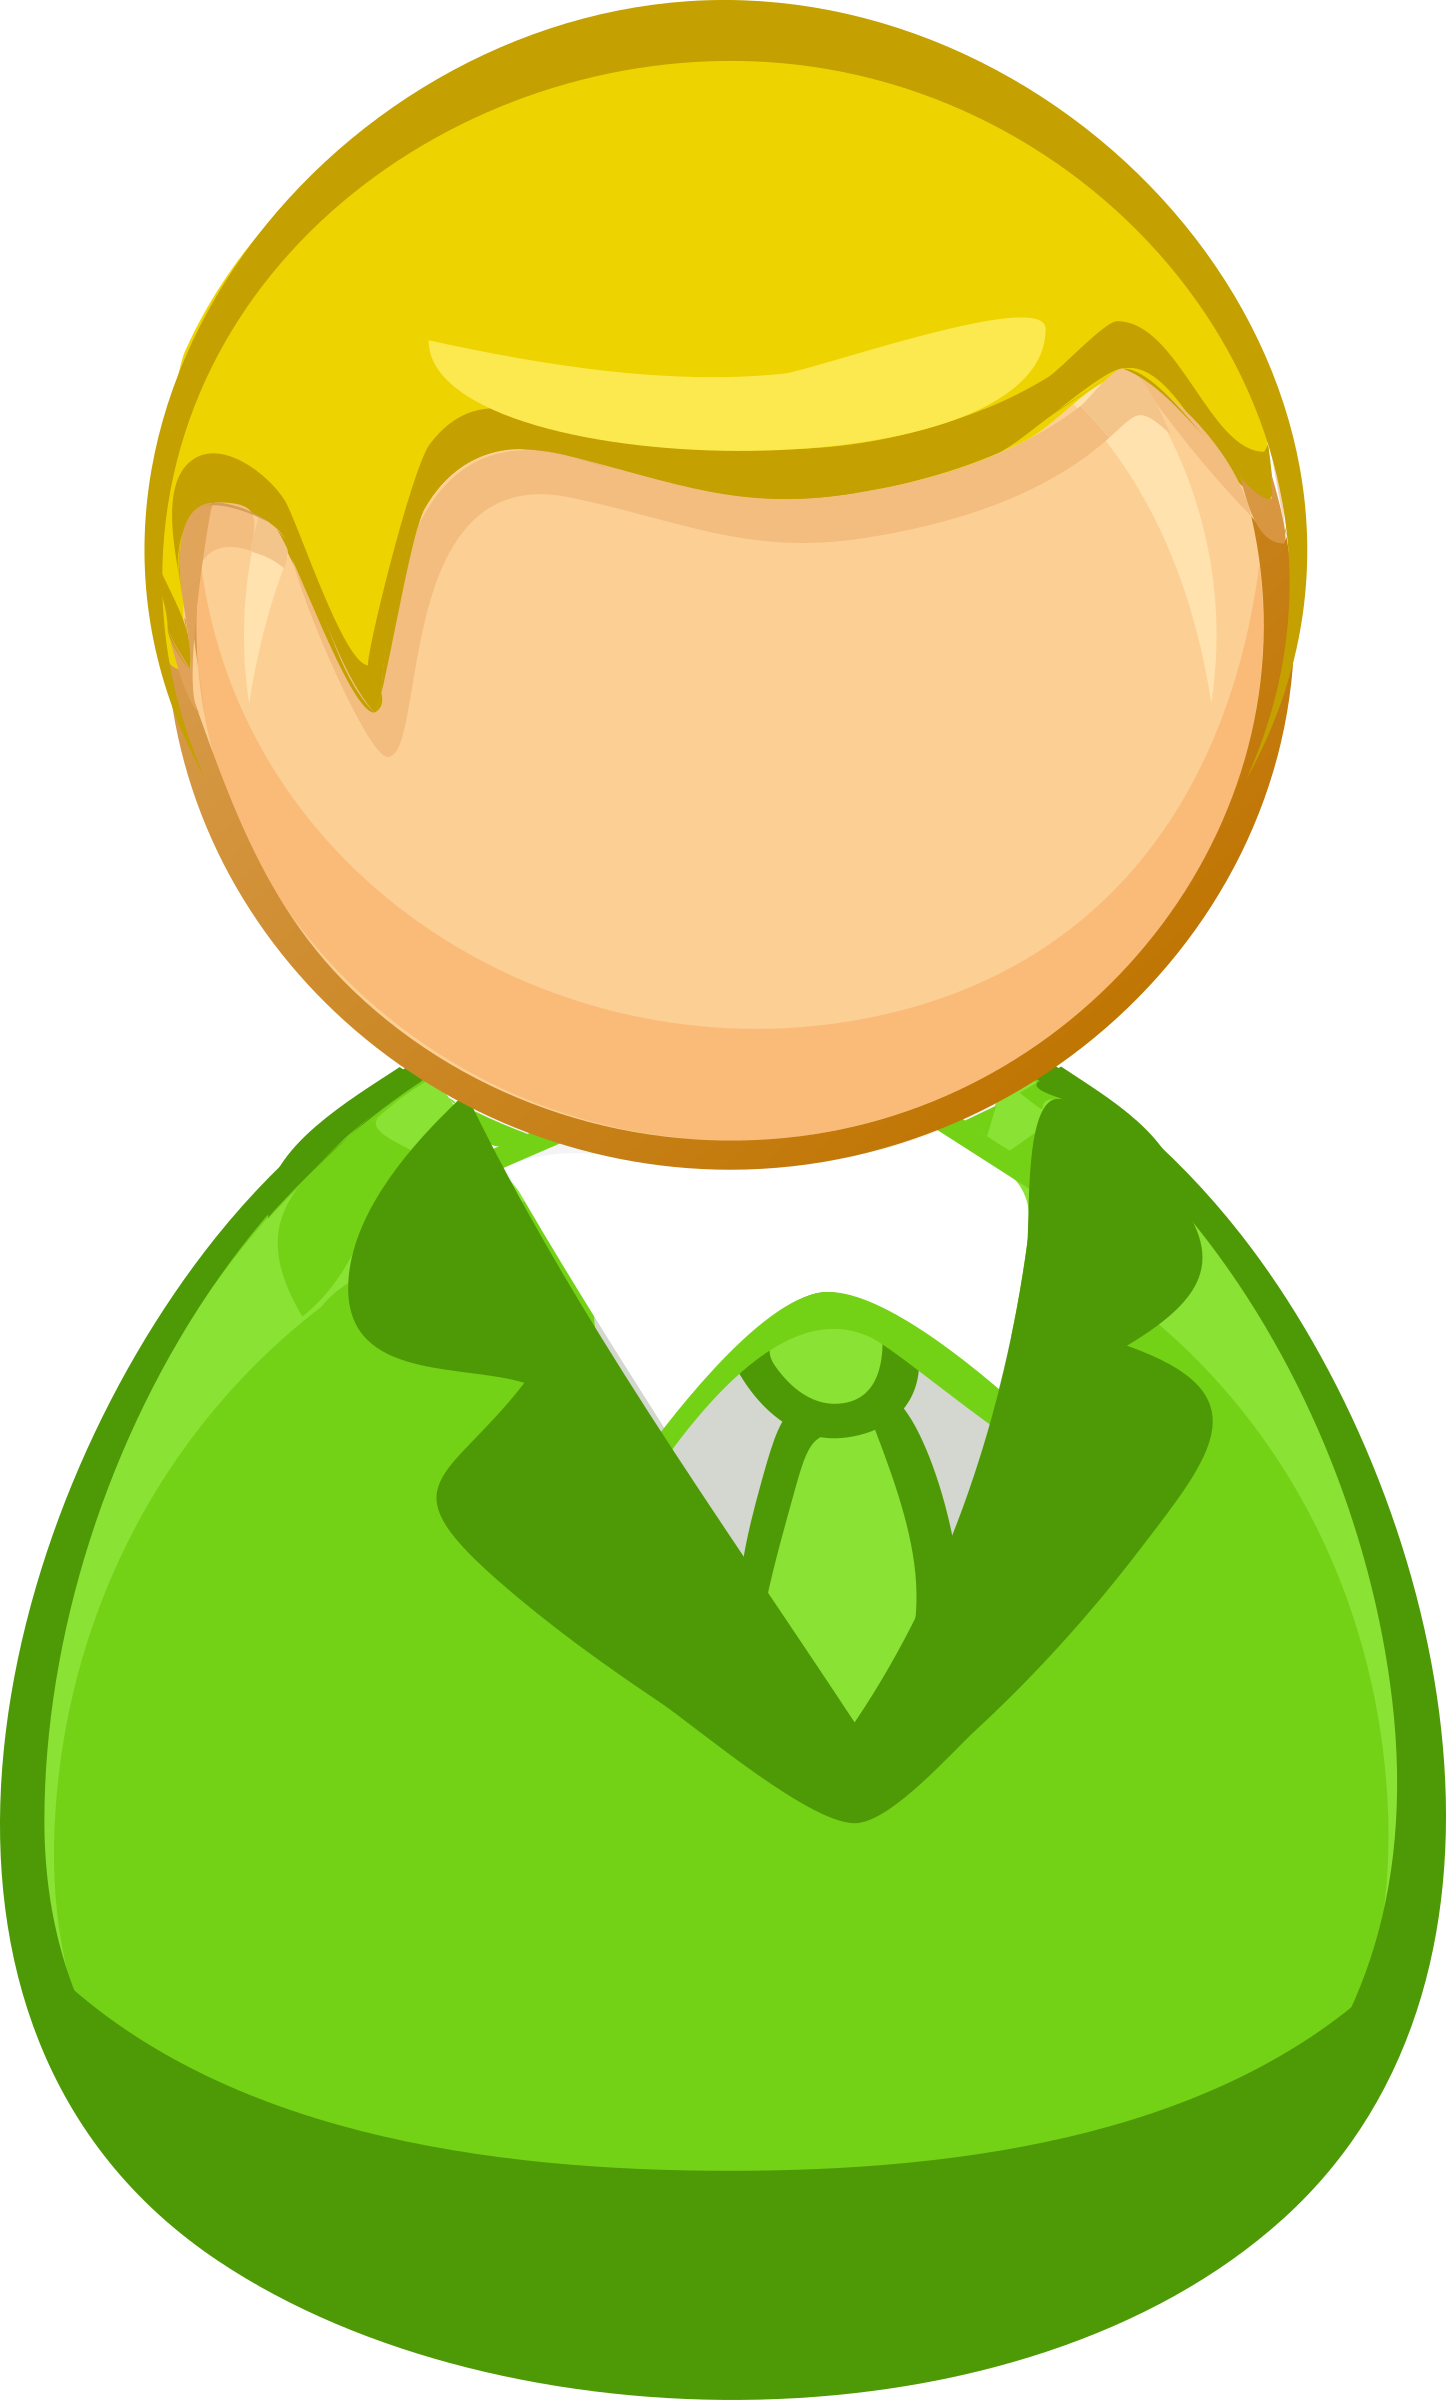 Green man png. Architetto remix blond icon